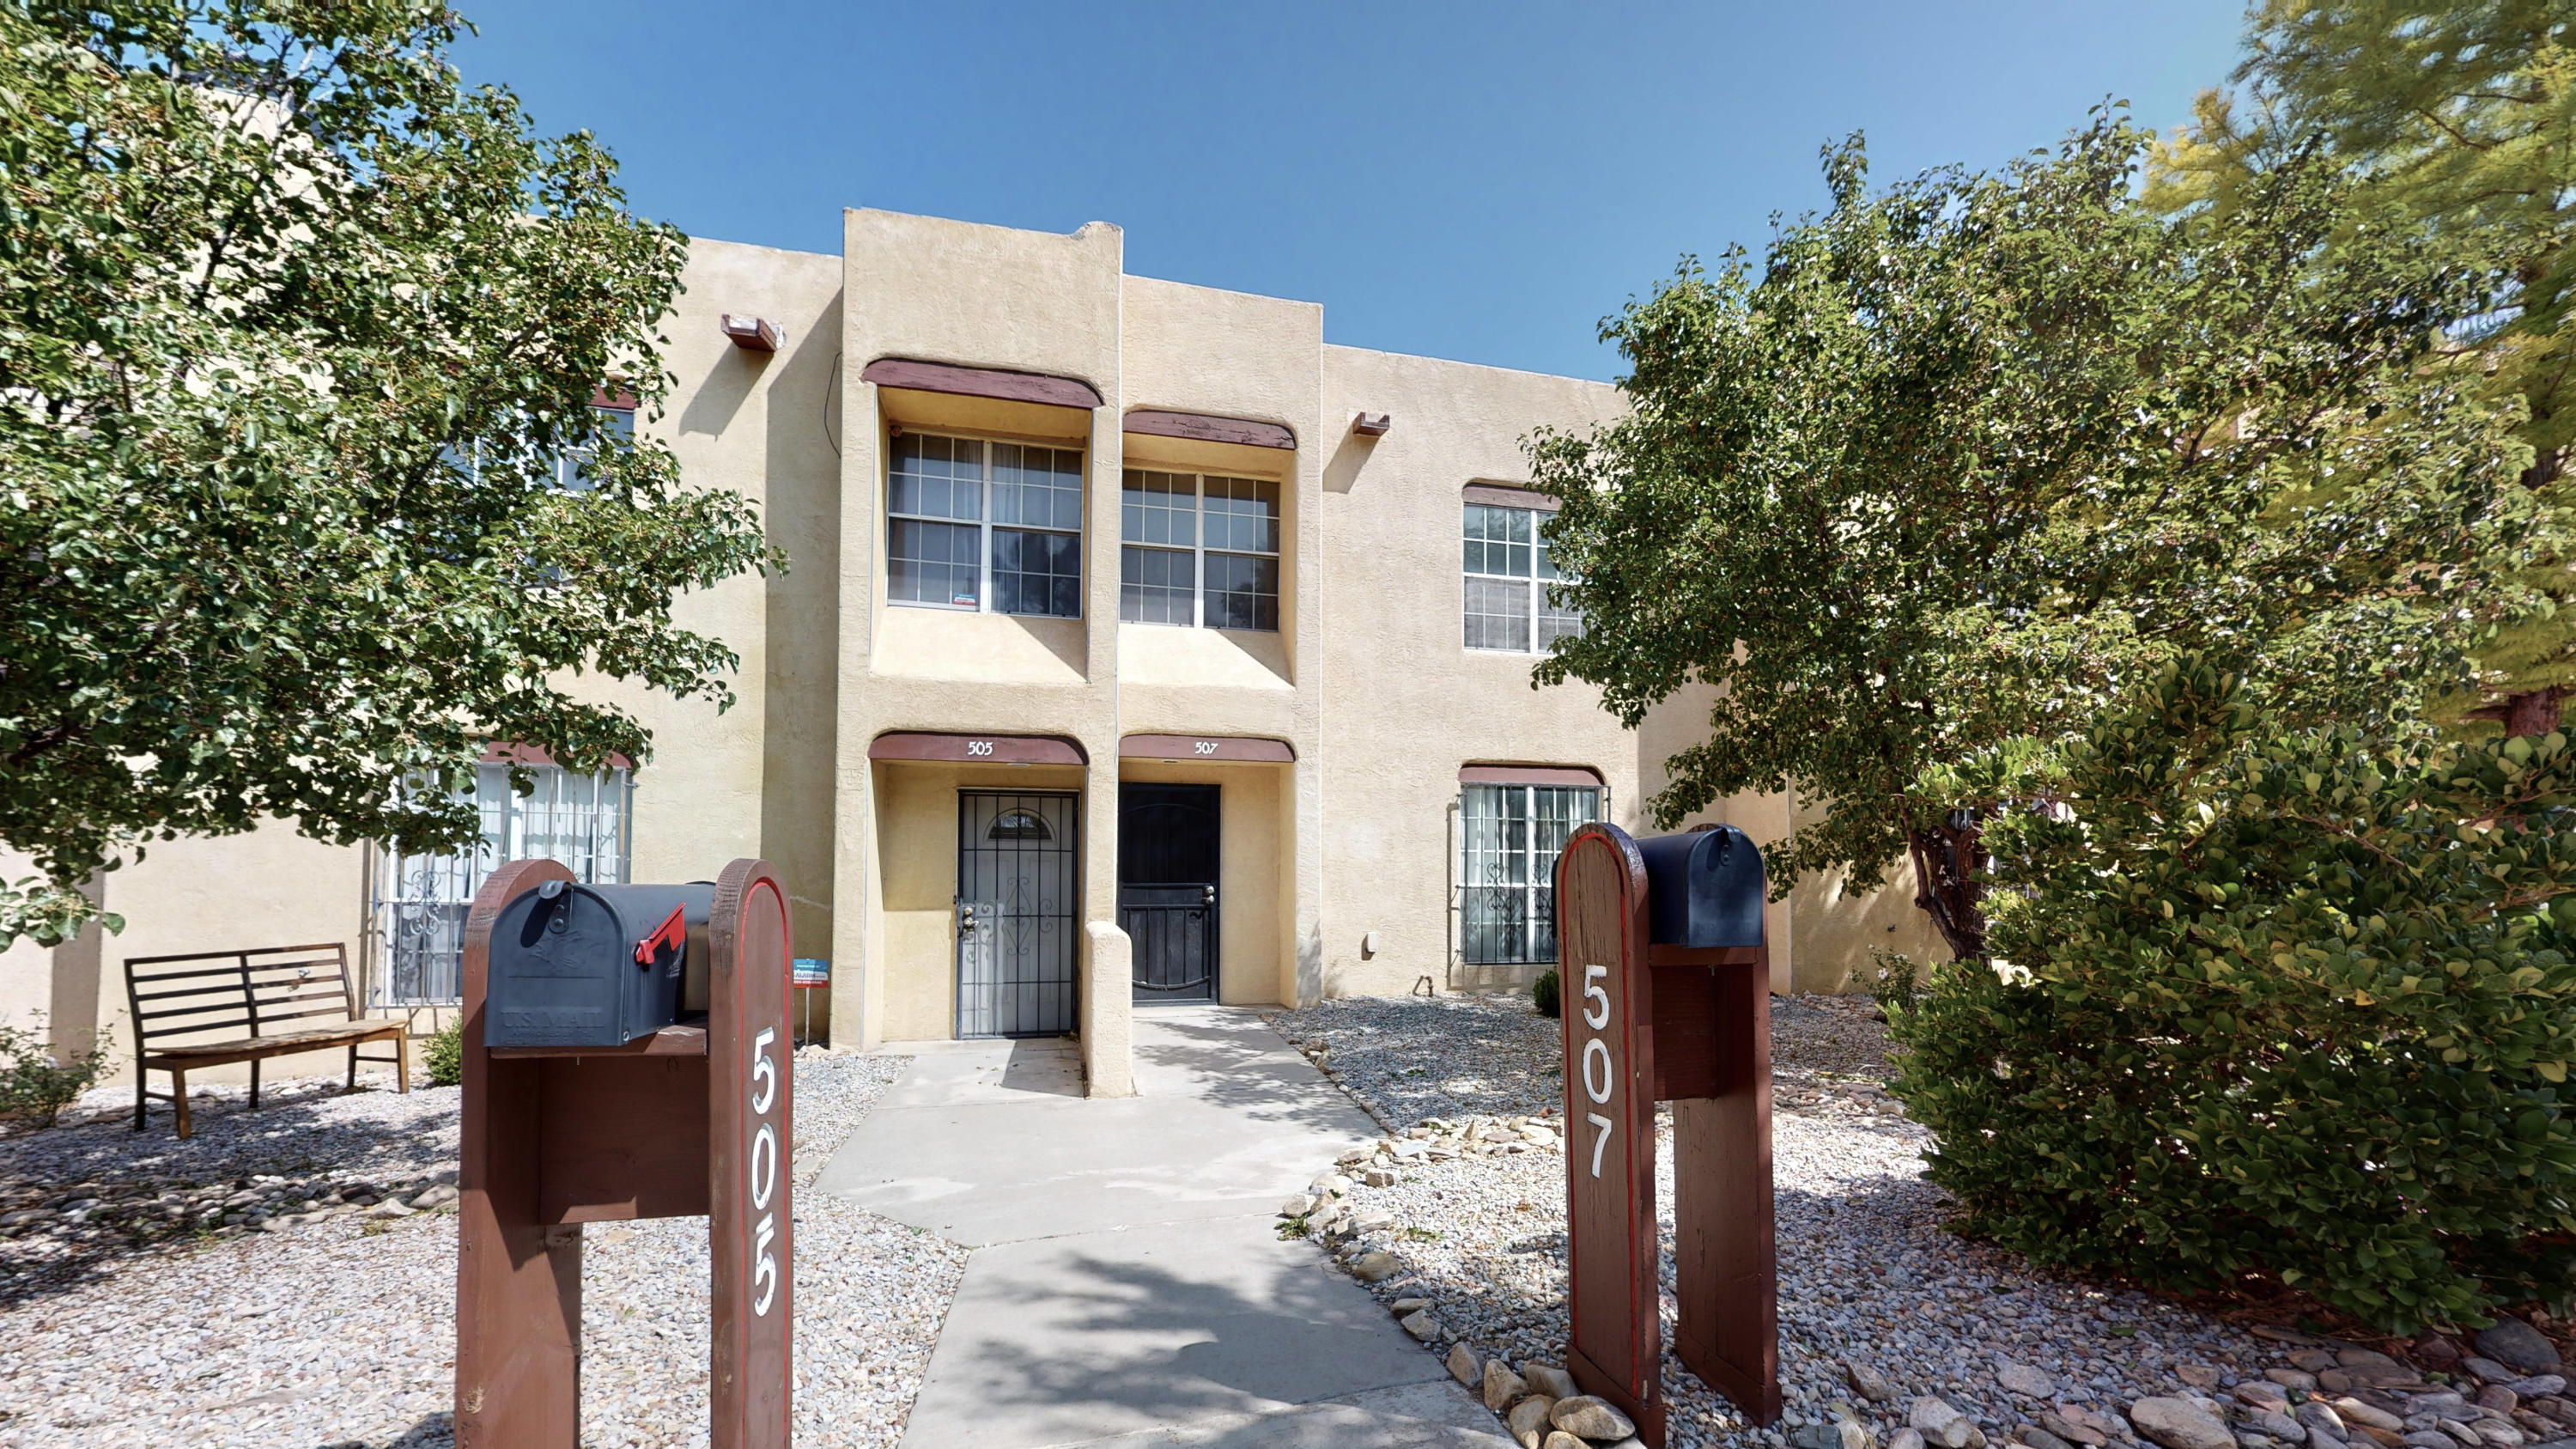 Open House -Wed 9/23 5-7pm, Thurs 9/24 5-7pm, Fri 9/25 from 5-7. Sat. 9/26 from 11-1 and Sun 9/27 from 3-5 pm. Charming two-story townhome in downtown Albuquerque! The cozy living room features a wood-burning fireplace and oversized window allowing natural light to flow into the home. The beautiful tile downstairs looks like reclaimed wood that will leave your guests in awe! The must-see kitchen is open to the dining room and features a built-in breakfast bar! Take a step outside into the back courtyard area with shade trees and access to the two-car garage! Stackable Washer and dryer stay! Conveniently located in the heart of the city near Lovelace Medical Center, UNM, Downtown, Knob Hill, Old Town, CNM, Museums, Restaurants, Shopping, and freeway access. Take a virtual walkthrough tour!